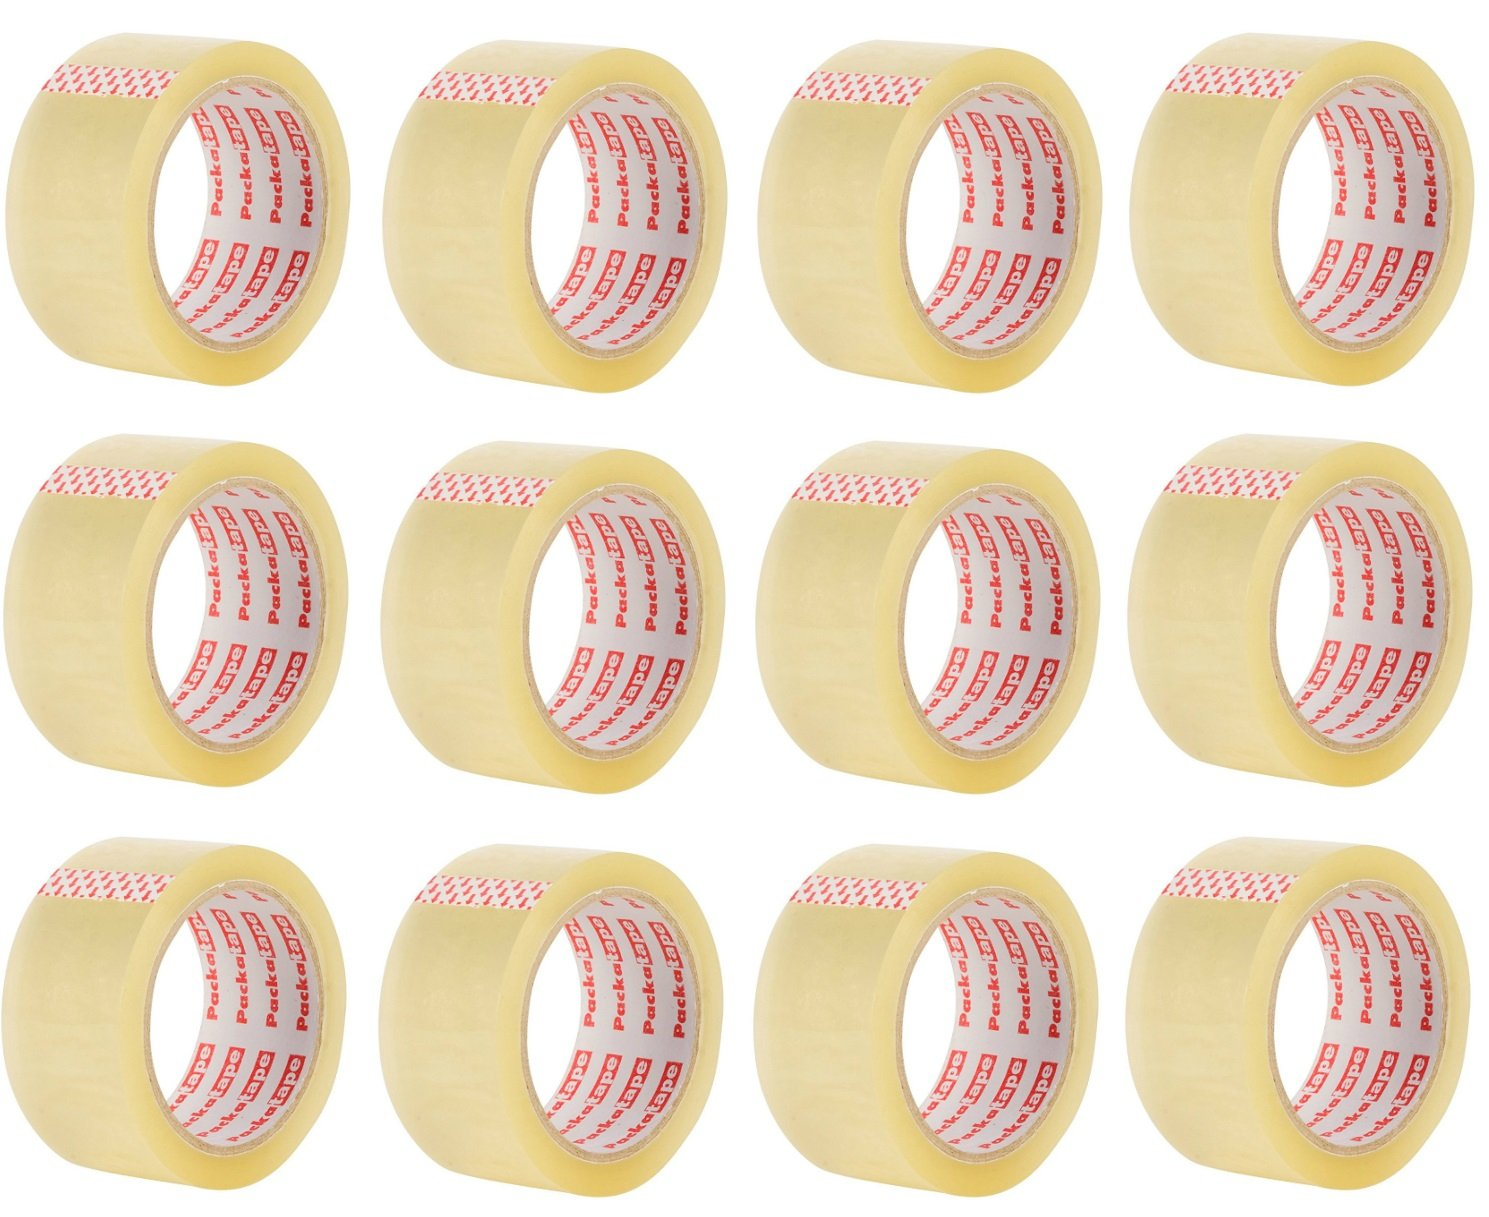 Packatape Clear Packaging Tape for Parcels and Boxes. This 12 roll Pack of Heavy Duty Clear Packing Tape Provides a Strong, Secure and Sticky Seal for Your Boxes, 12 Rolls 48MM x 66M